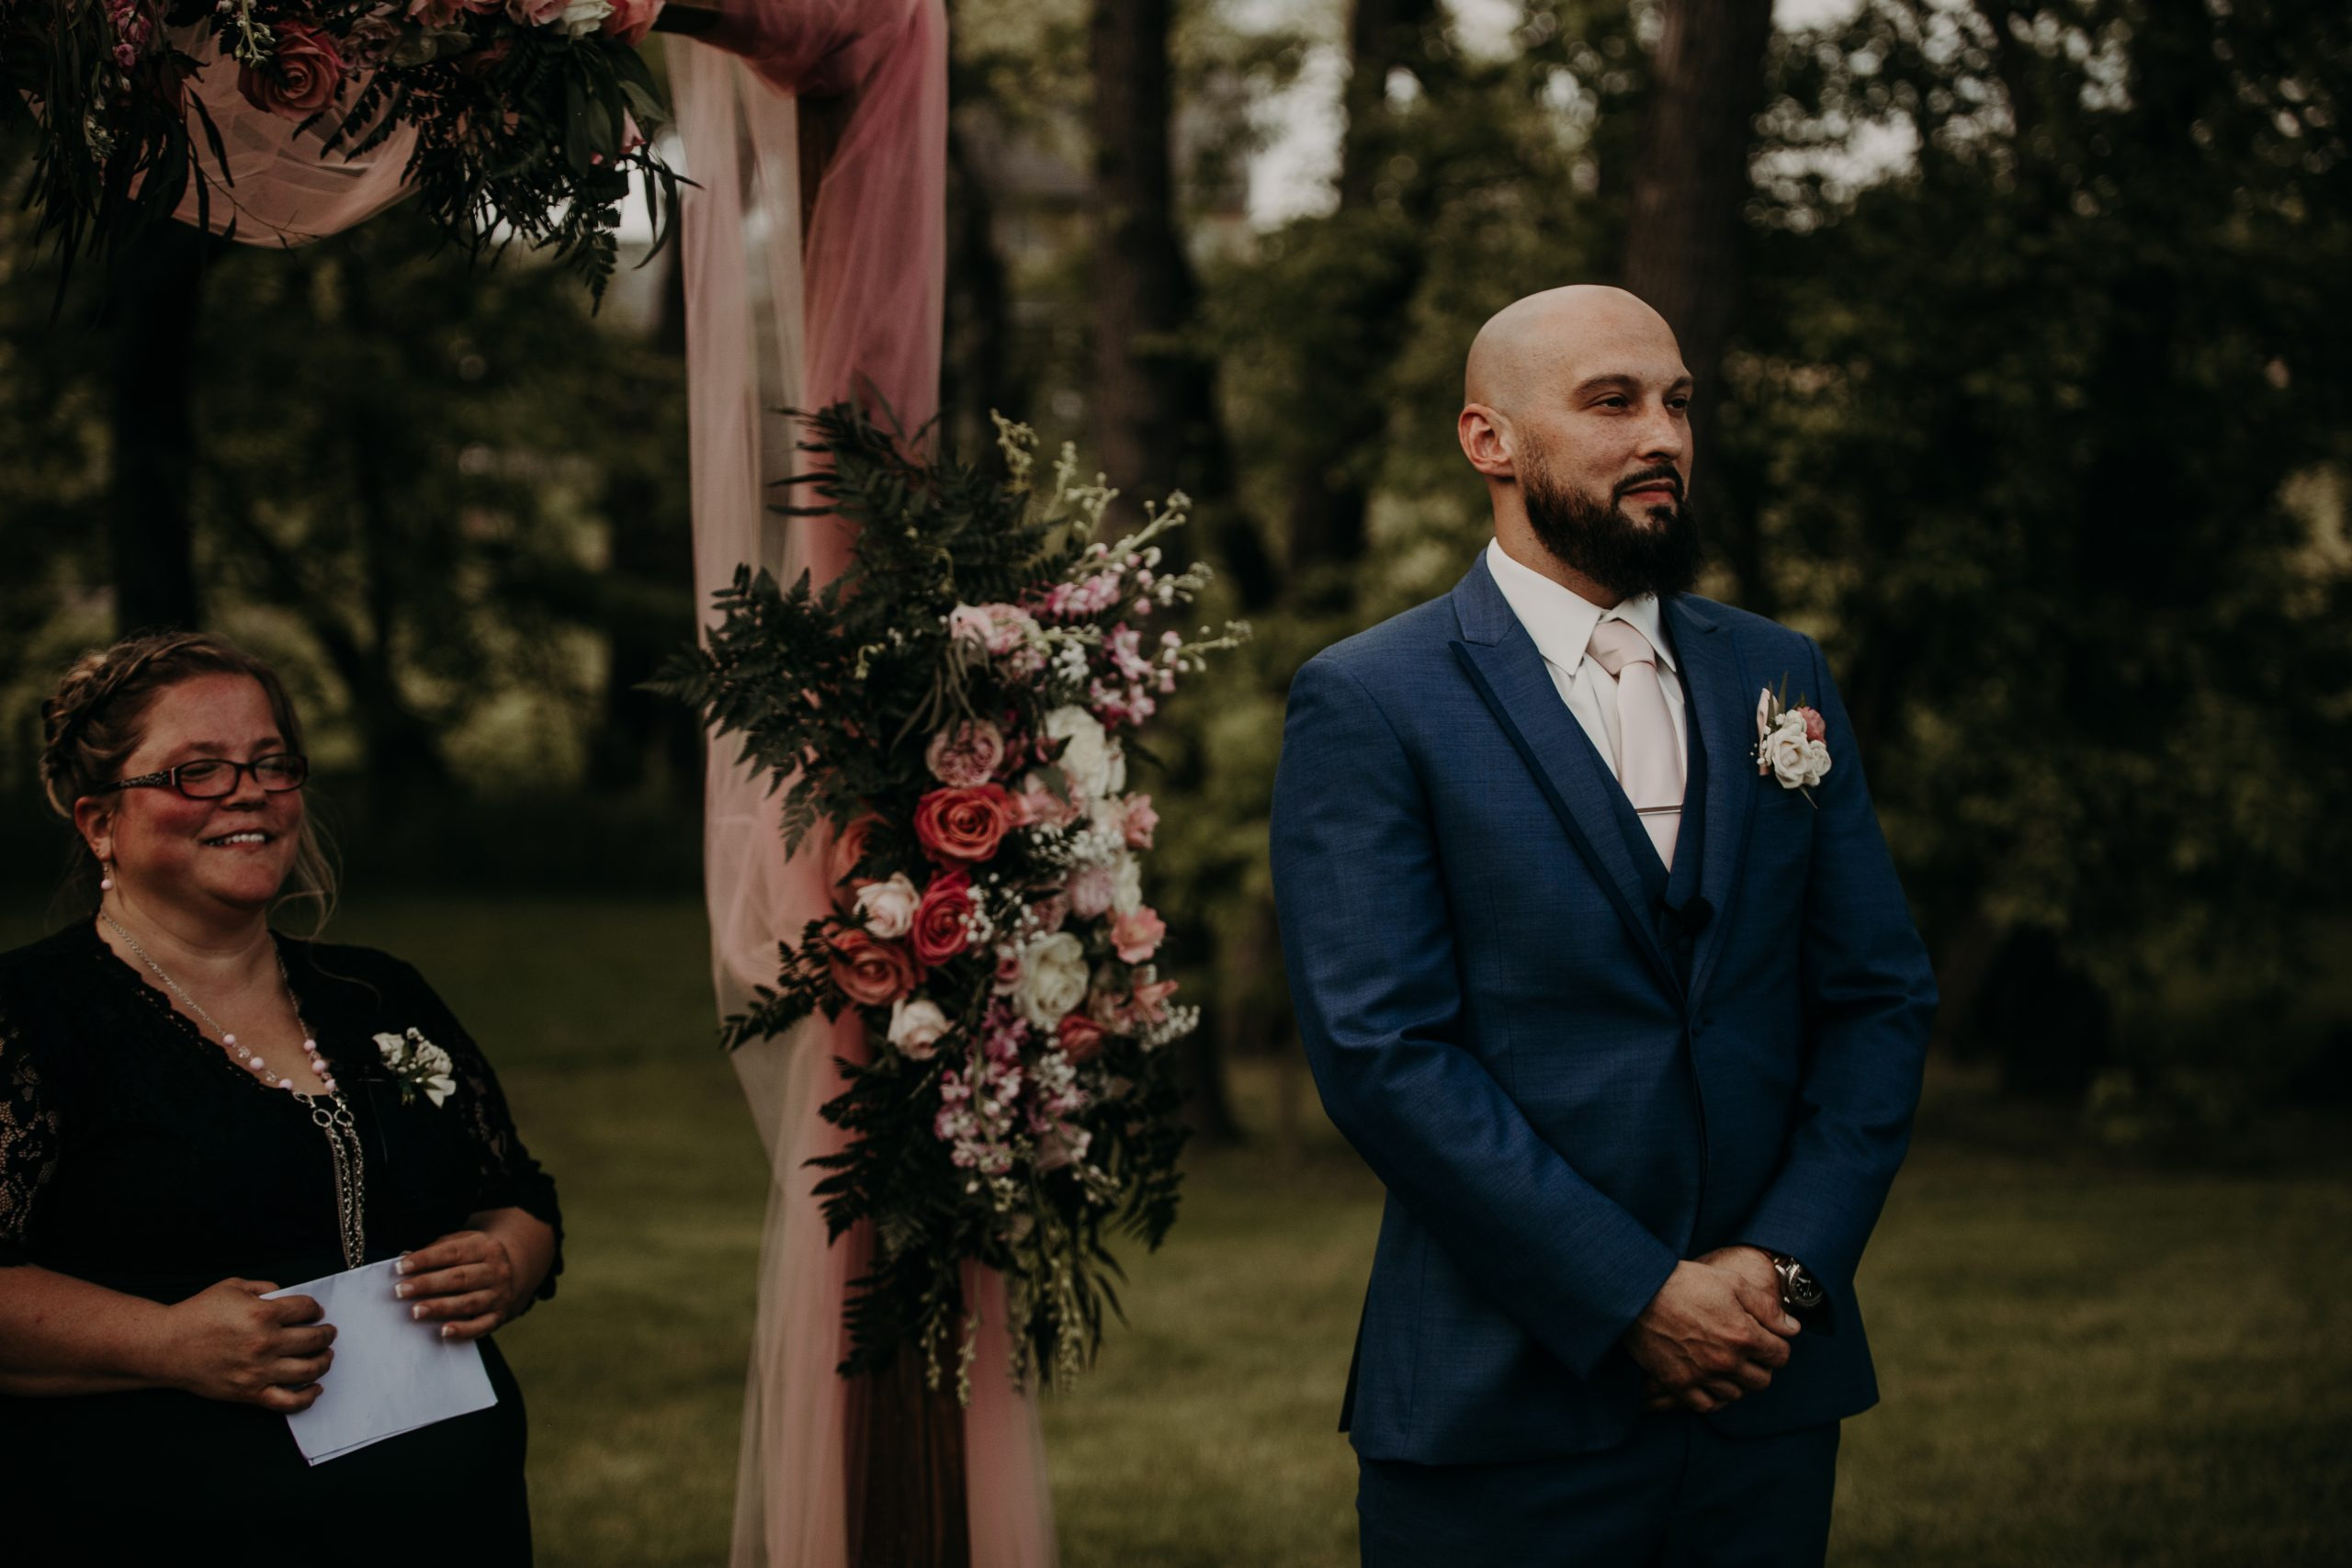 Richard awaits the ceremony to begin at the end of the isle. Christine and Richard wed on the Chestnut Hill Villa grounds on May of 2019. This organic ethereal styled wedding was captured by Garnet Dahlia Photography and featured on Dream Weddings.